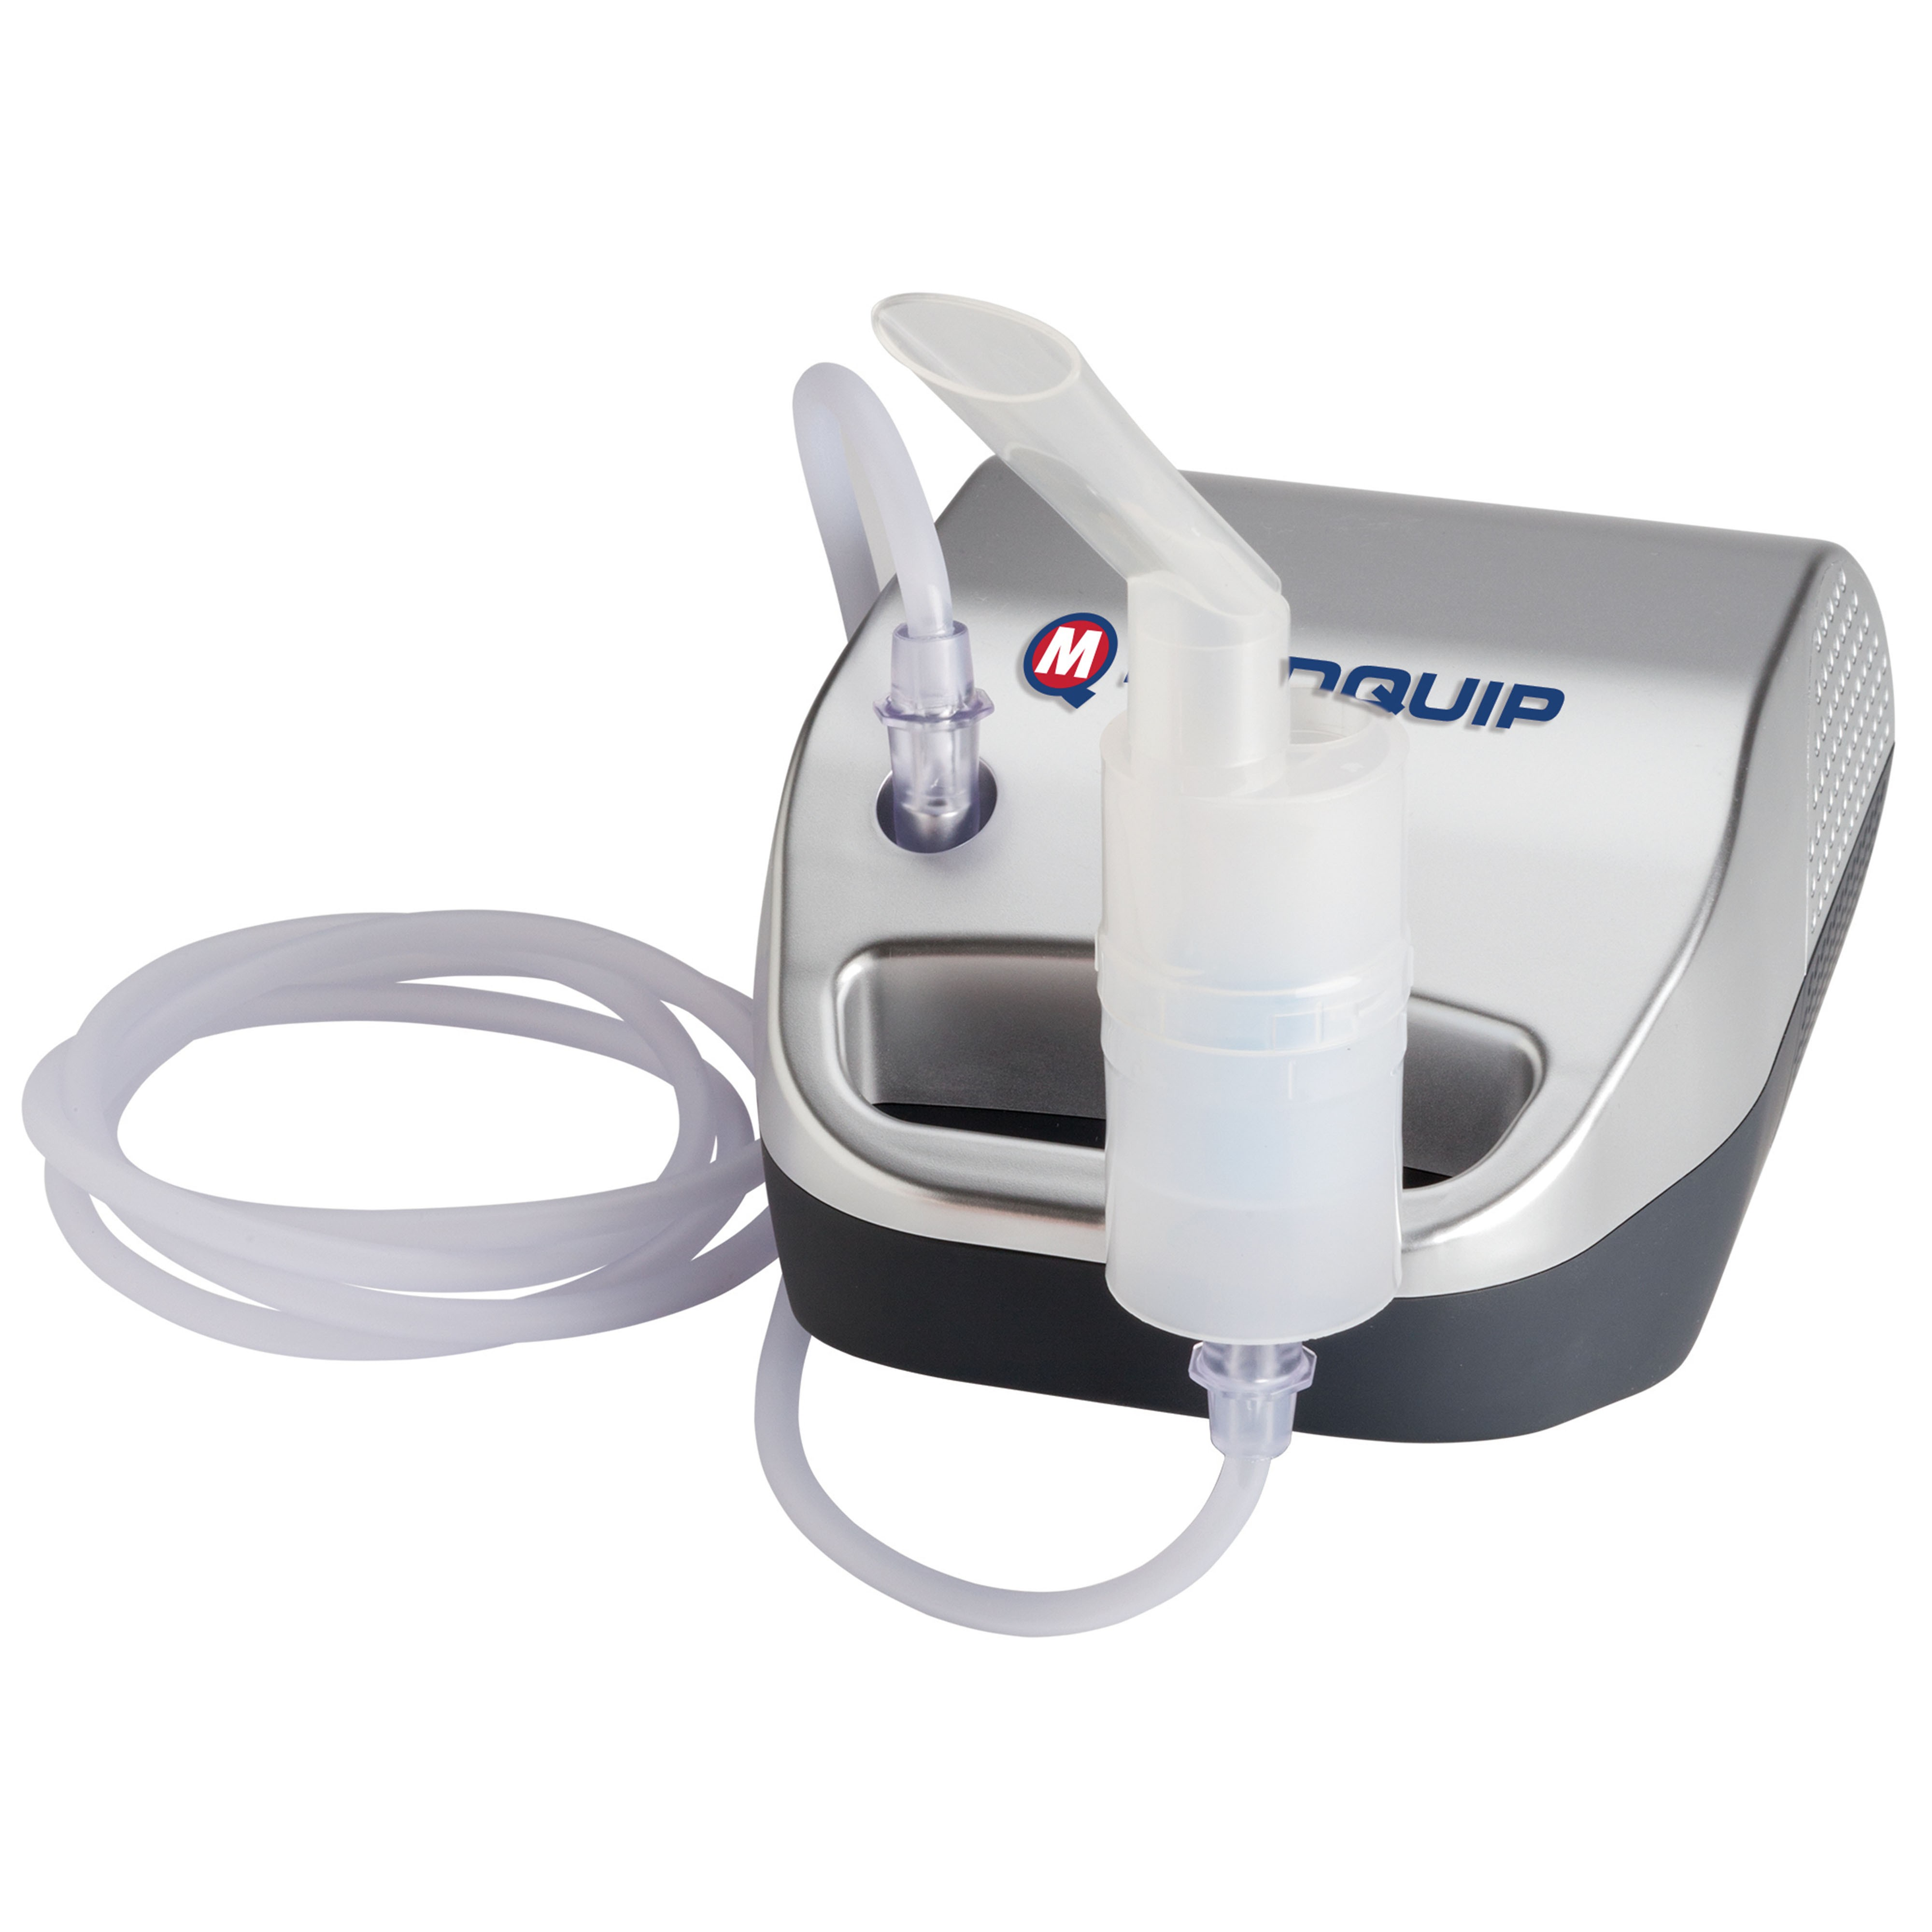 Drive DeVilbiss Healthcare Compact Compressor Nebulizer with Disposable Neb Kit